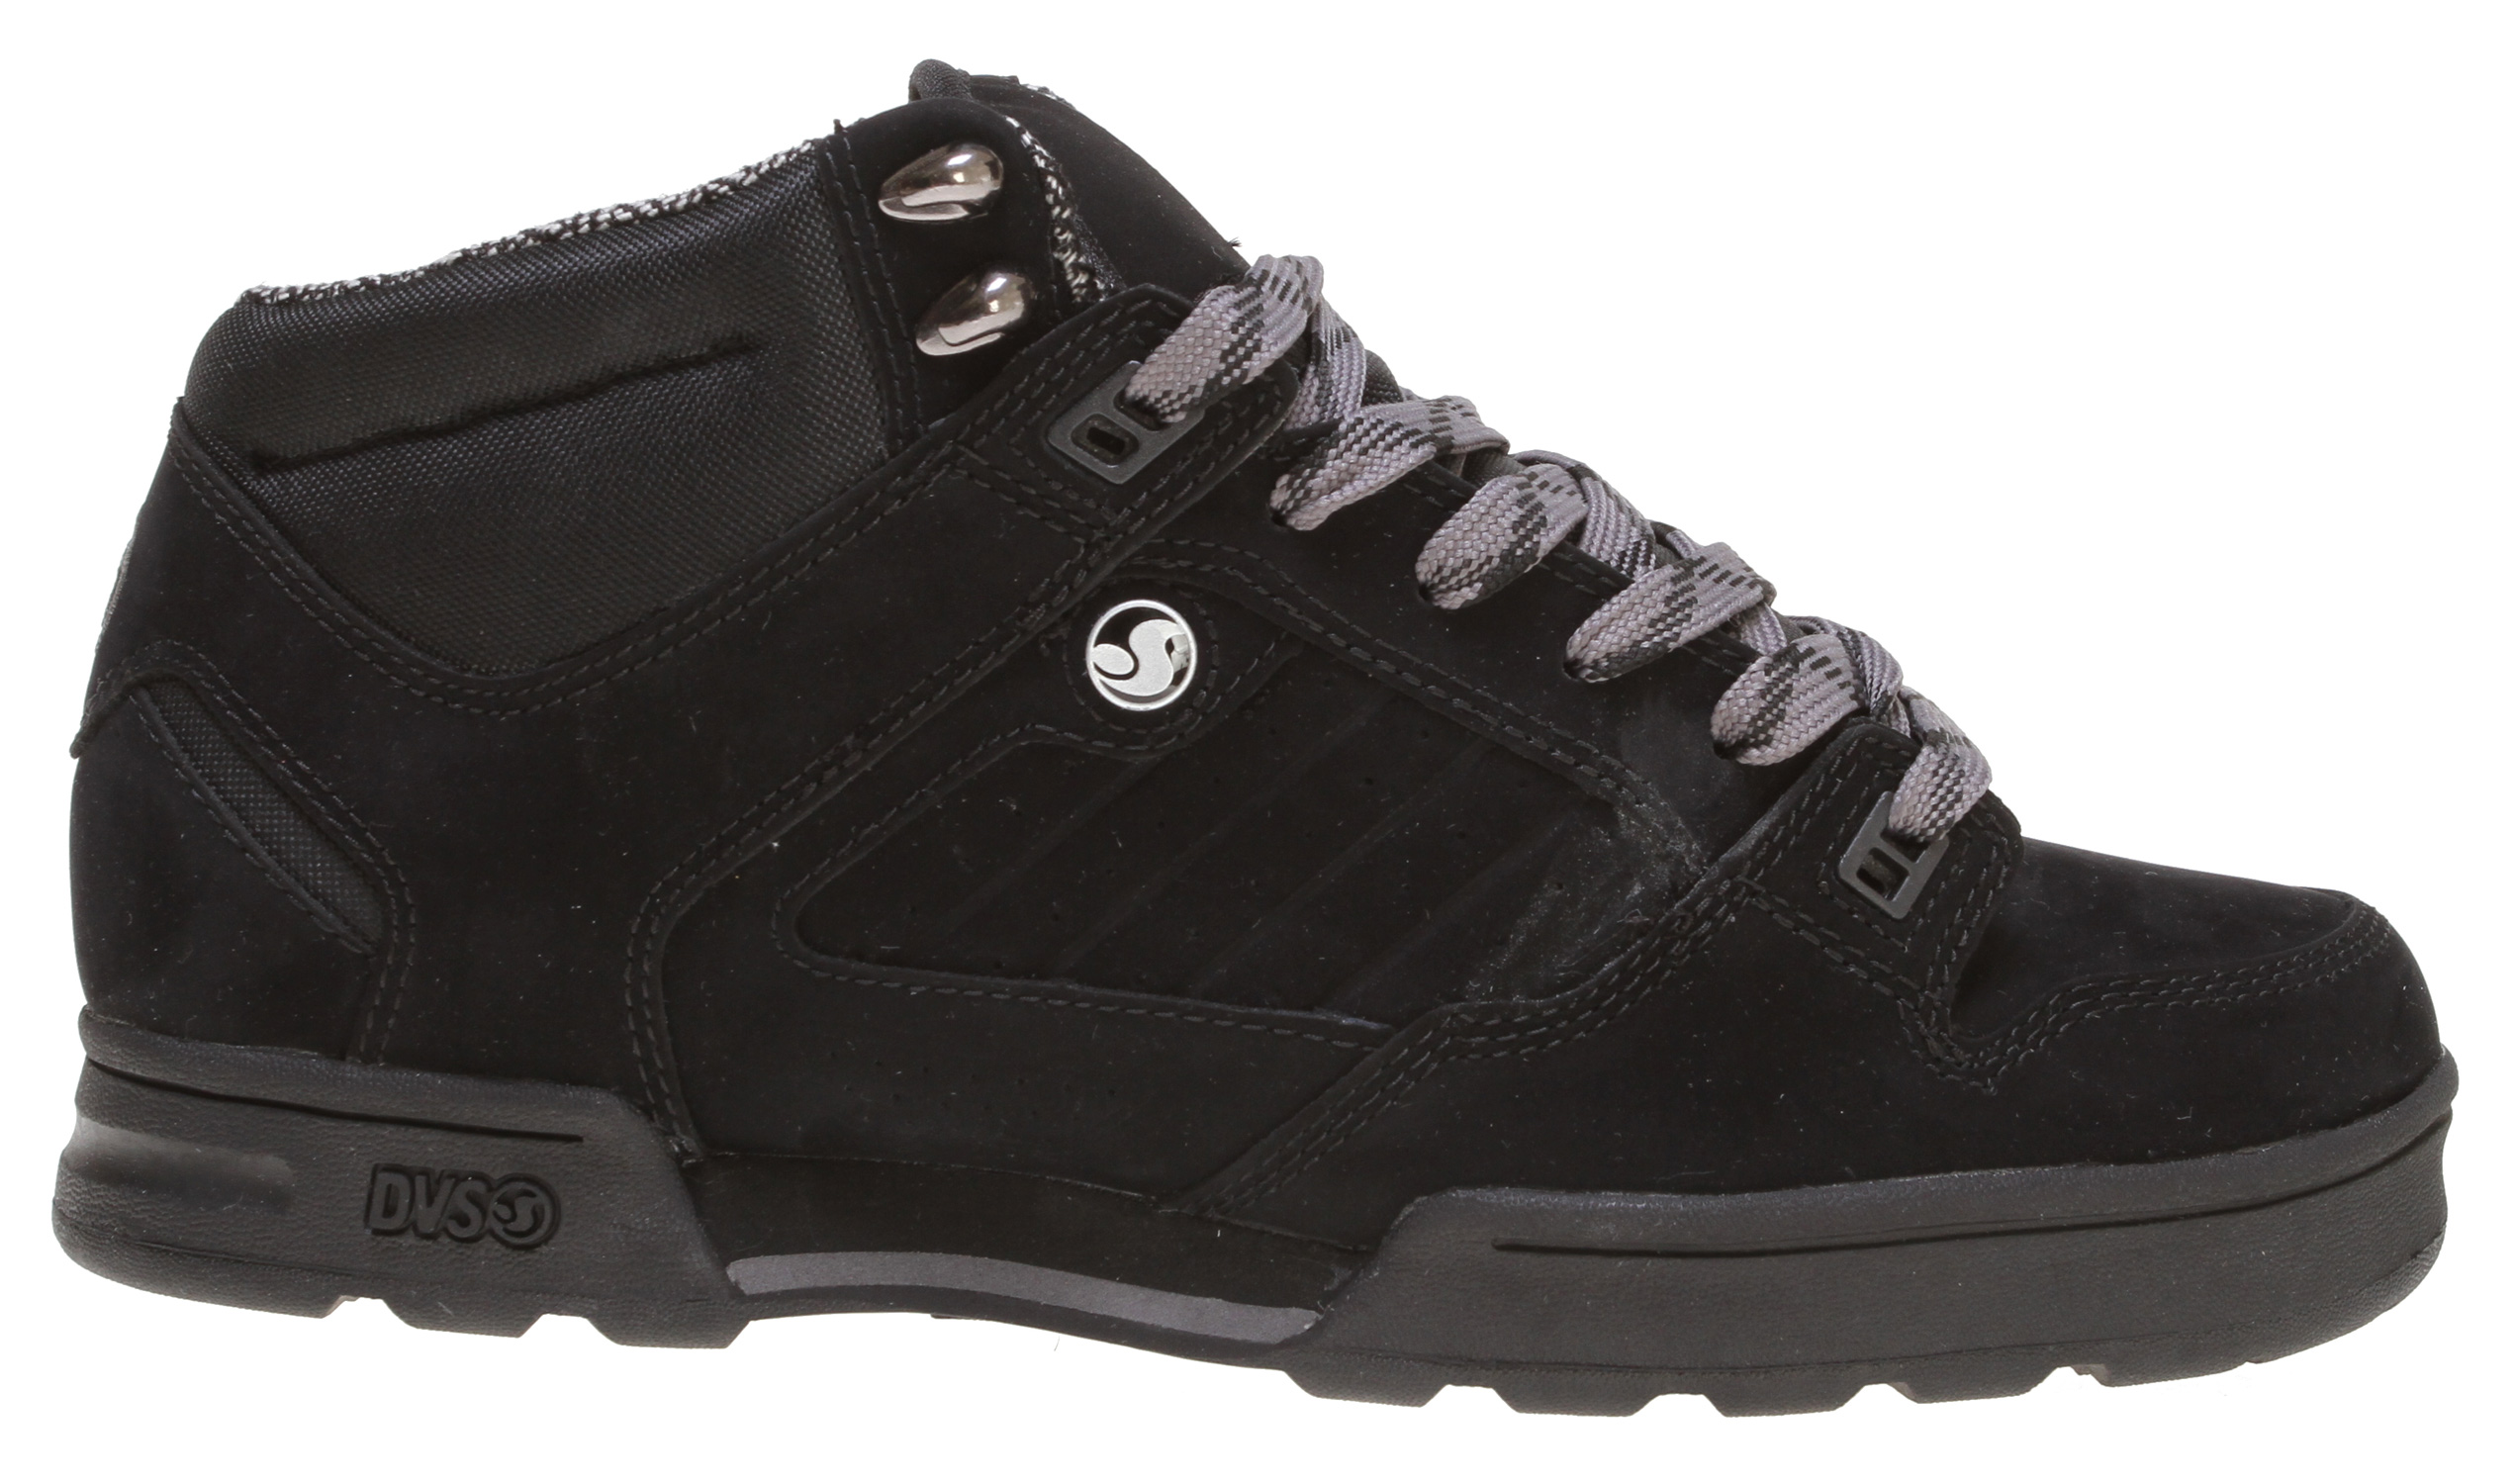 Key Features of the DVS Militia Boot Casual Boots: Water resistant upper Taped seams Weather protective tongue gussets Moisture wicking inner lining Metal DVS fast hooks Cold Grip Technology outsole - $57.95